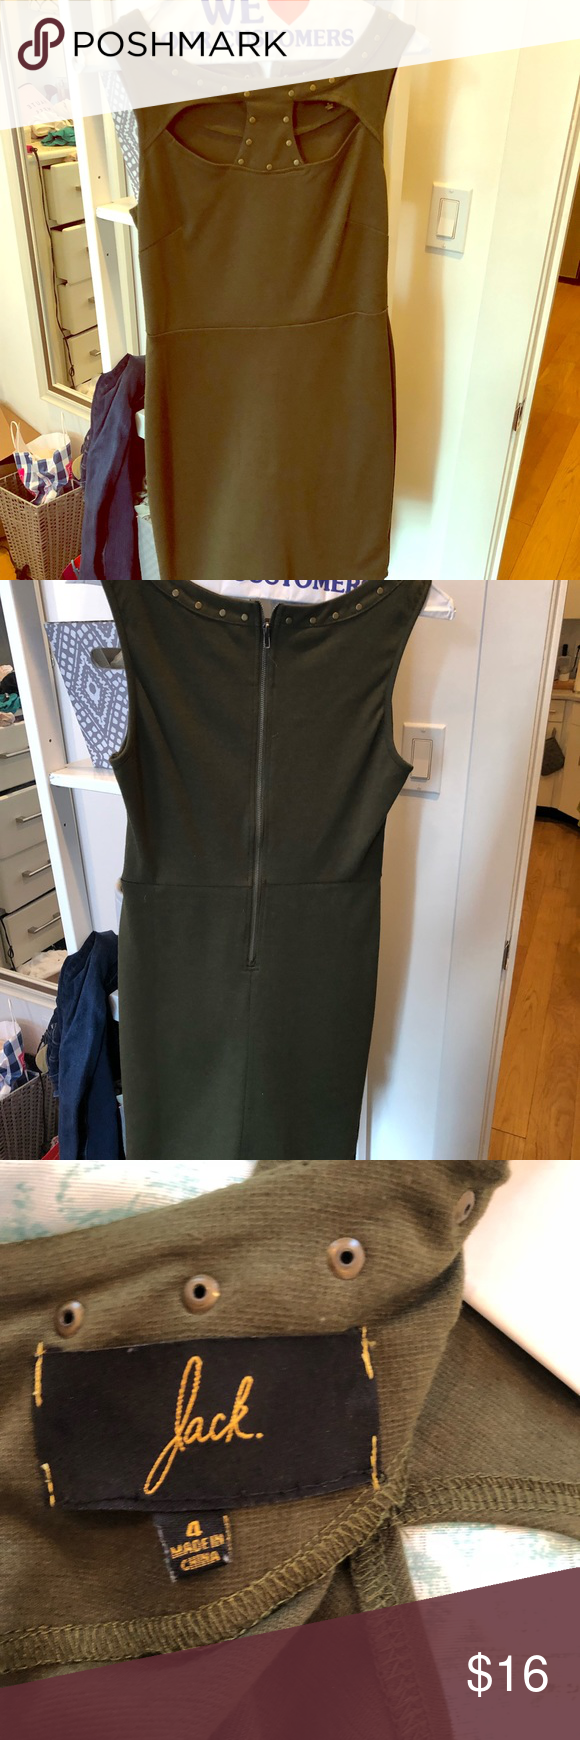 Green dress night out  Olive green going out dress size   My Posh Closet  Pinterest